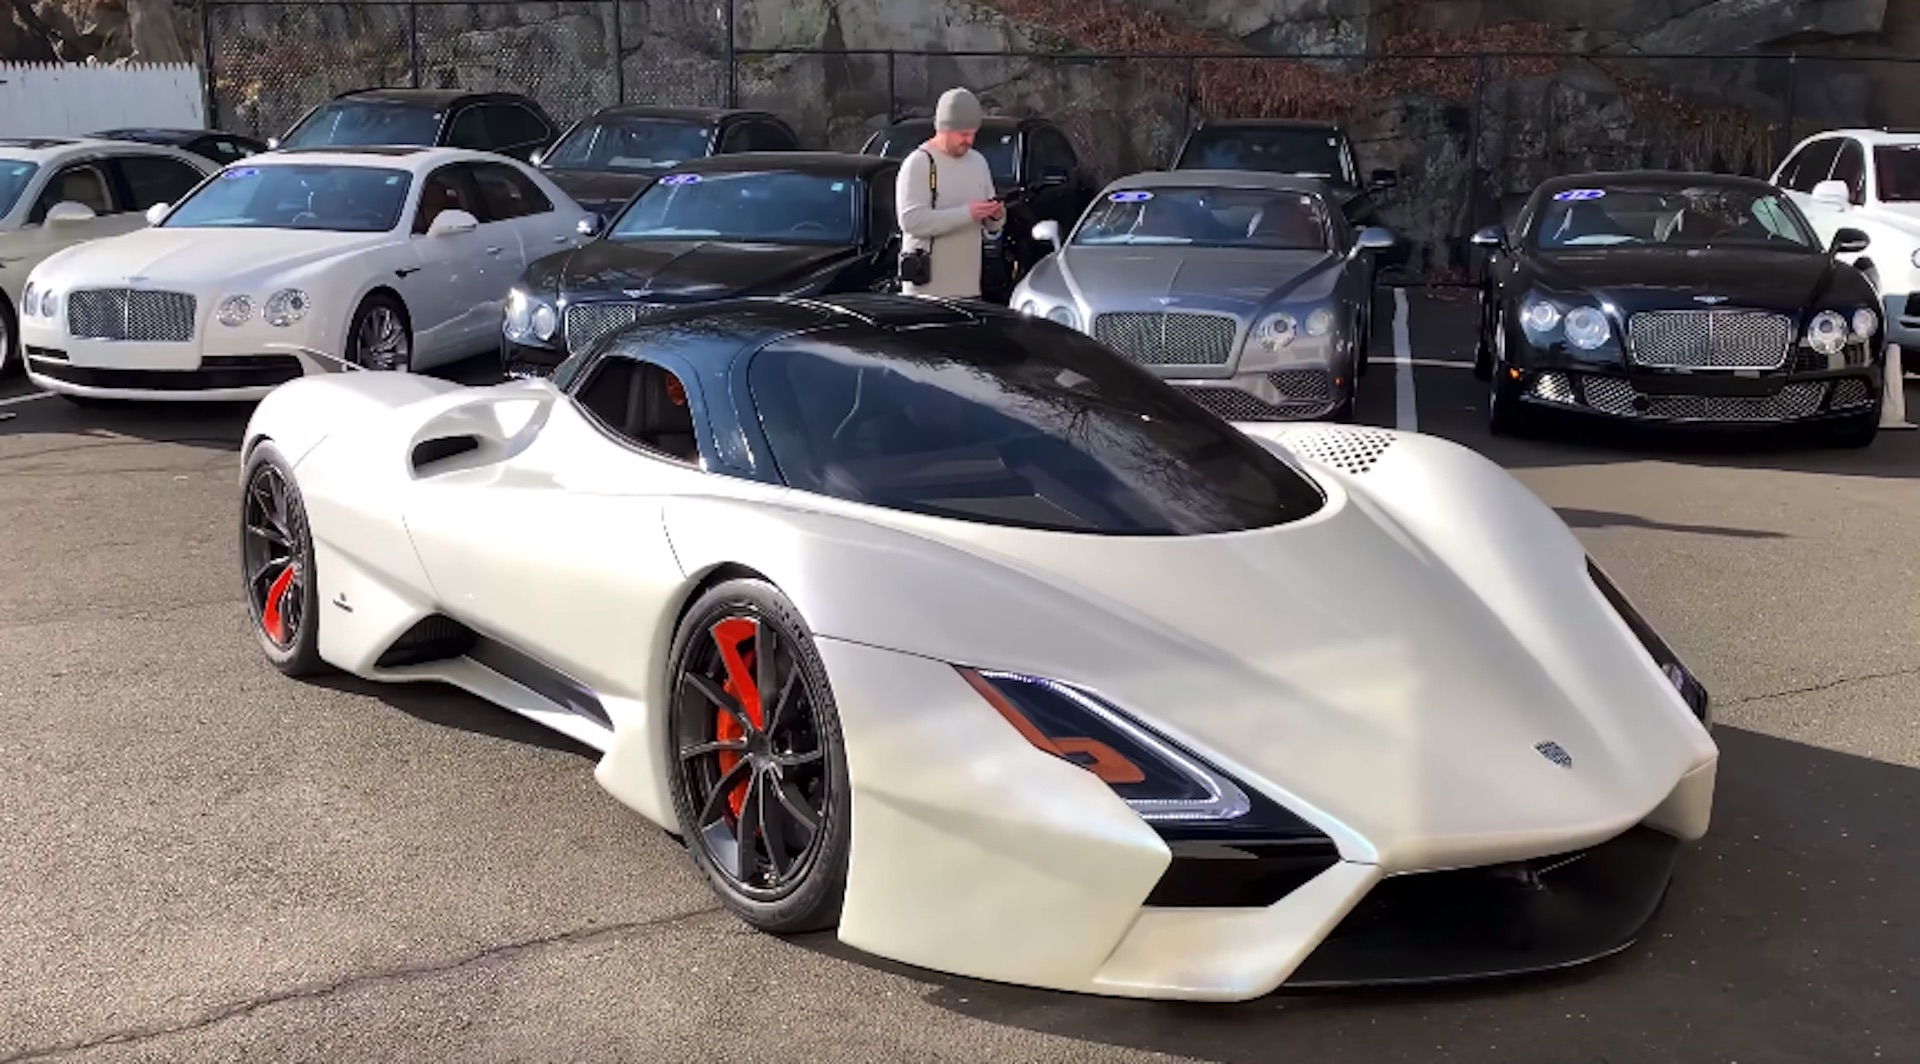 Hennessey Venom F5 >> SSC Tuatara prototype makes public appearance at dealership in Connecticut